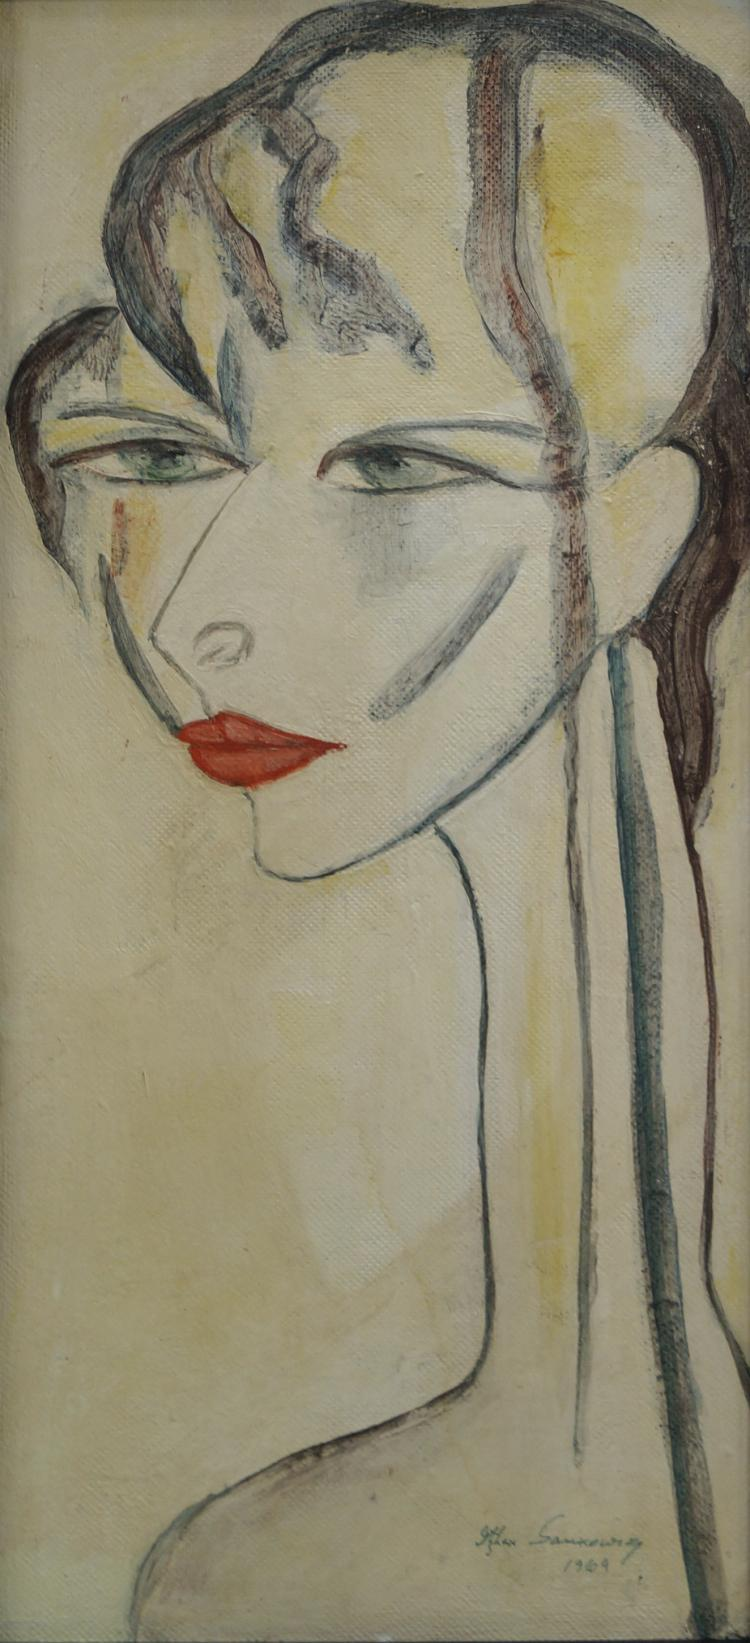 ITZHAK SAMKOWSKY (ROMANIAN/AMERICAN 1908-), OIL ON PANEL, YOUNG WOMAN, SIGNED 1969. 20 X 11 1/2